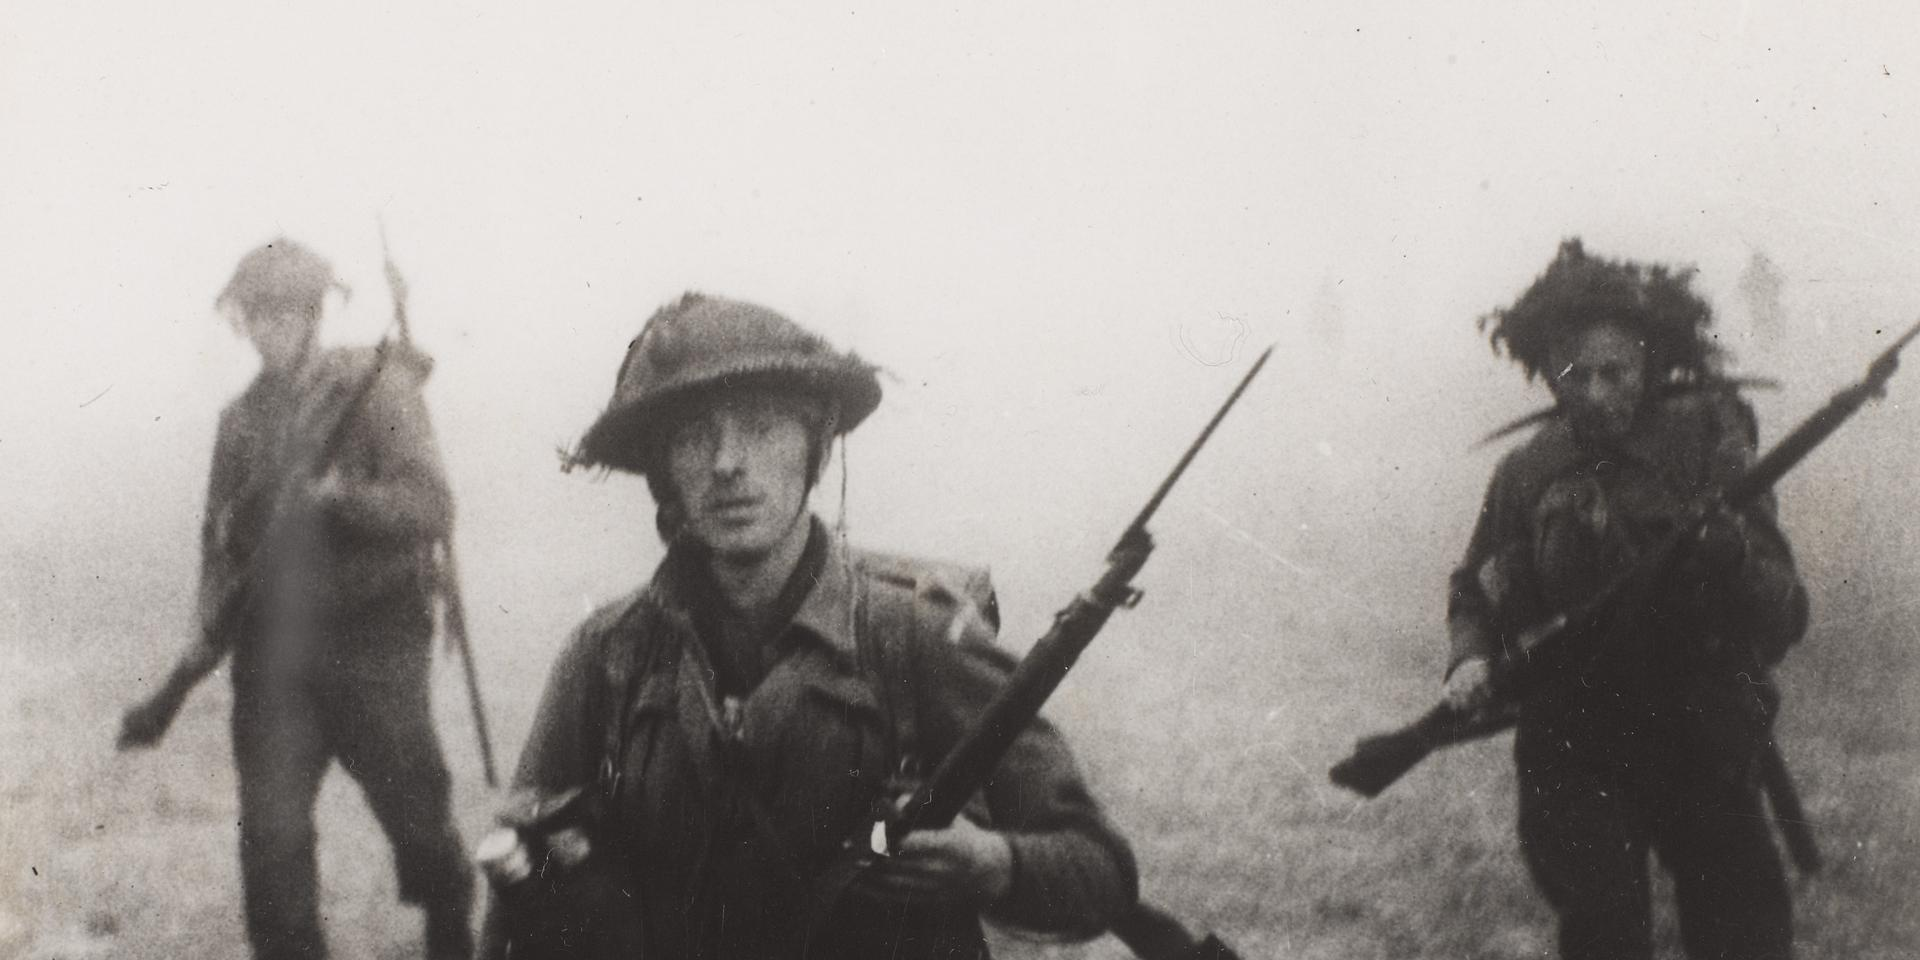 British troops advancing near Tilly, 1944